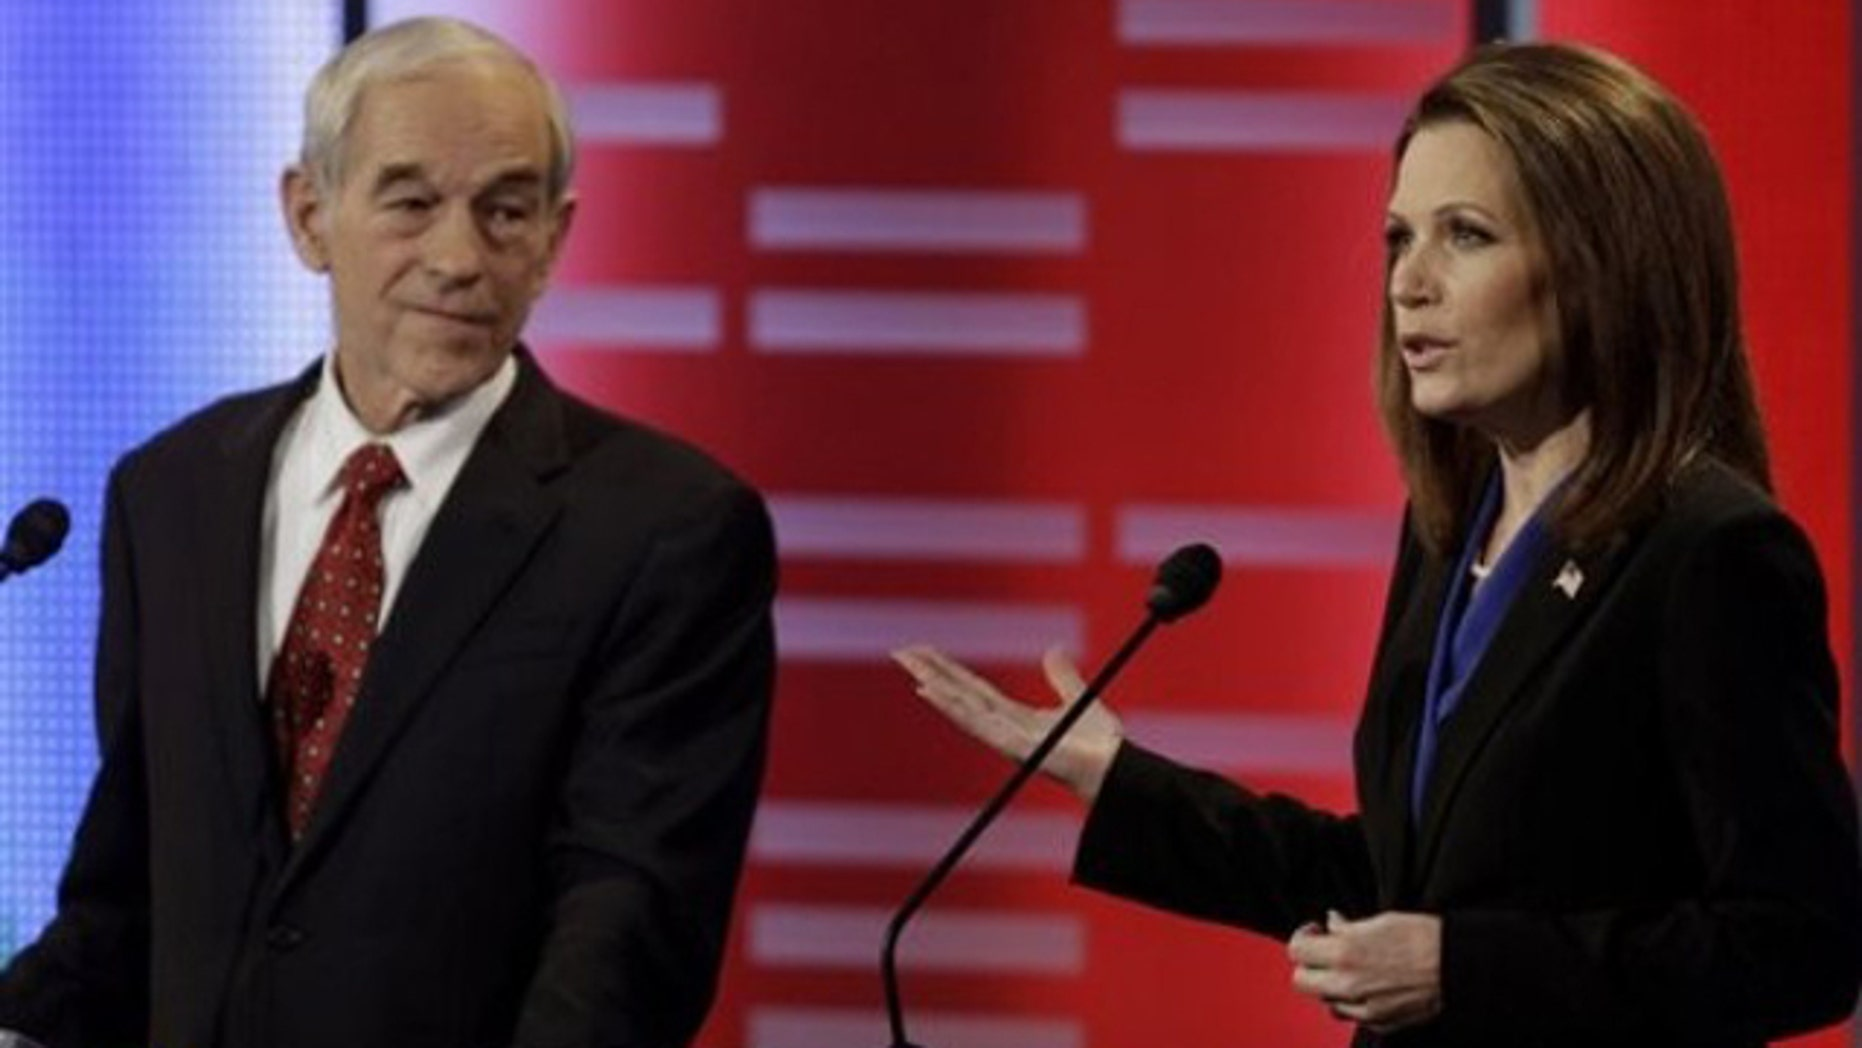 Dec. 10, 2011: Republican presidential candidates Reps. Ron Paul of Texas and Michele Bachmann of Minnesota take part in the Republican debate in Des Moines, Iowa.